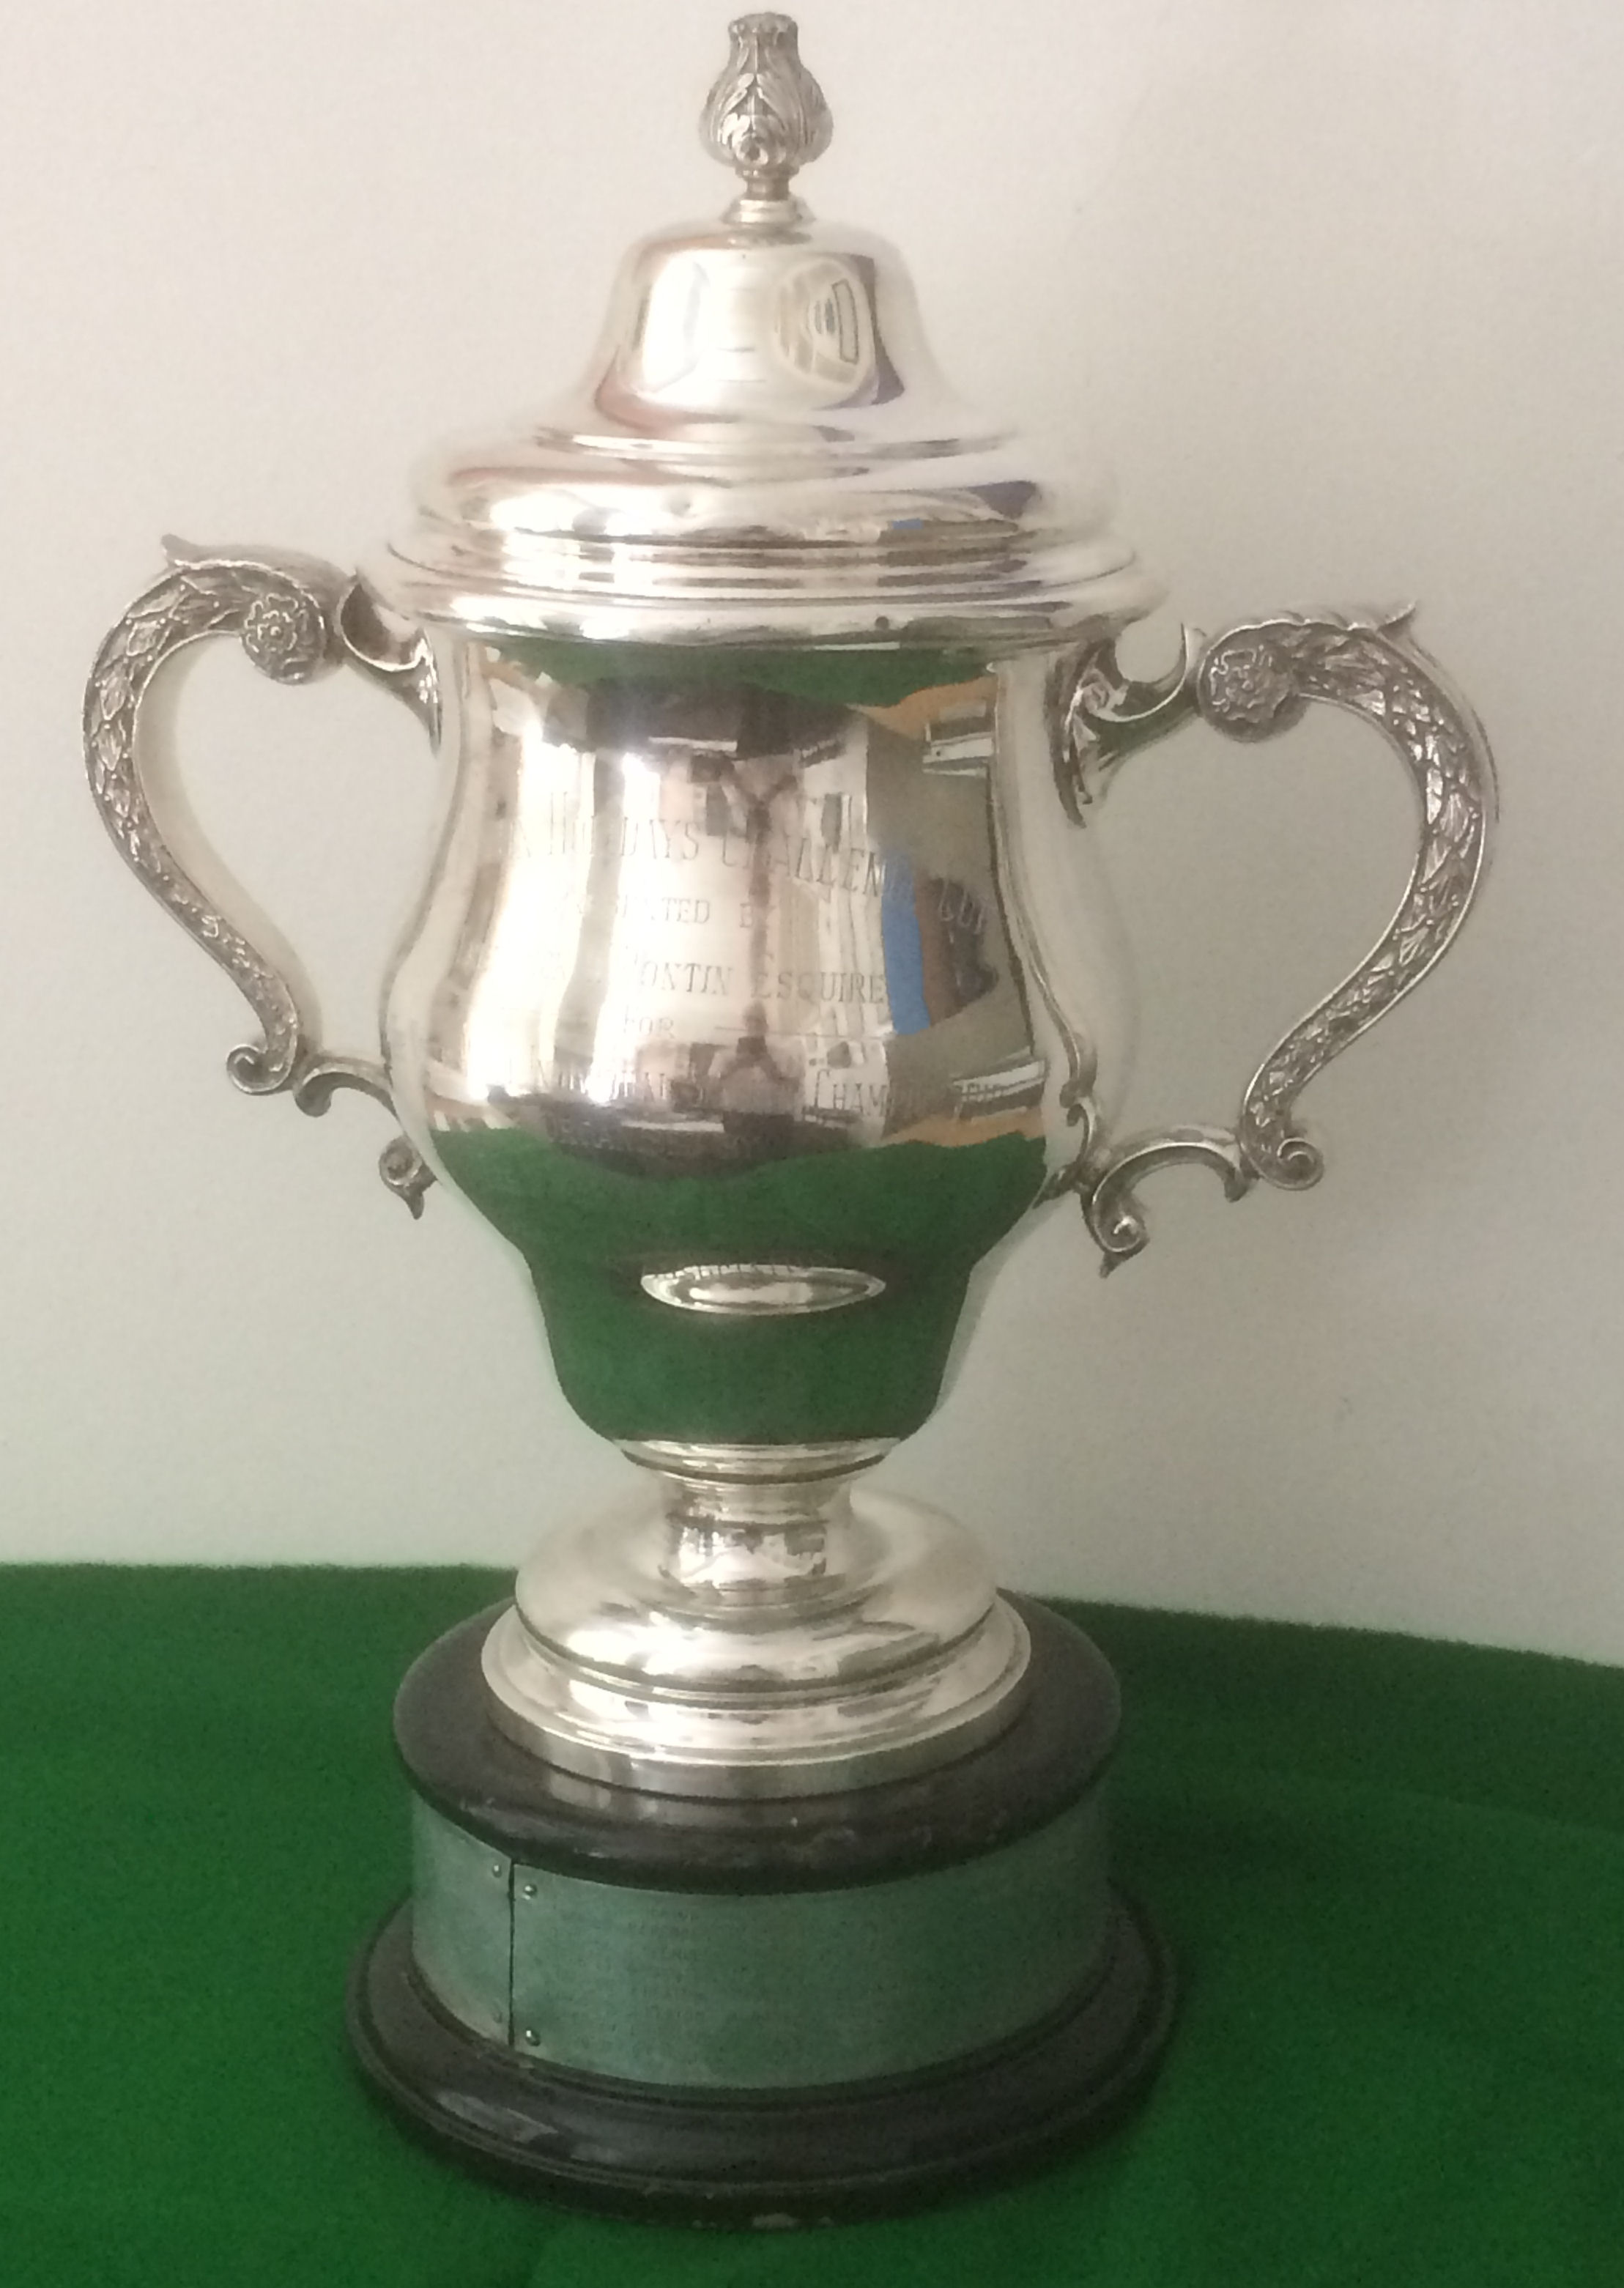 The Pontins Cup